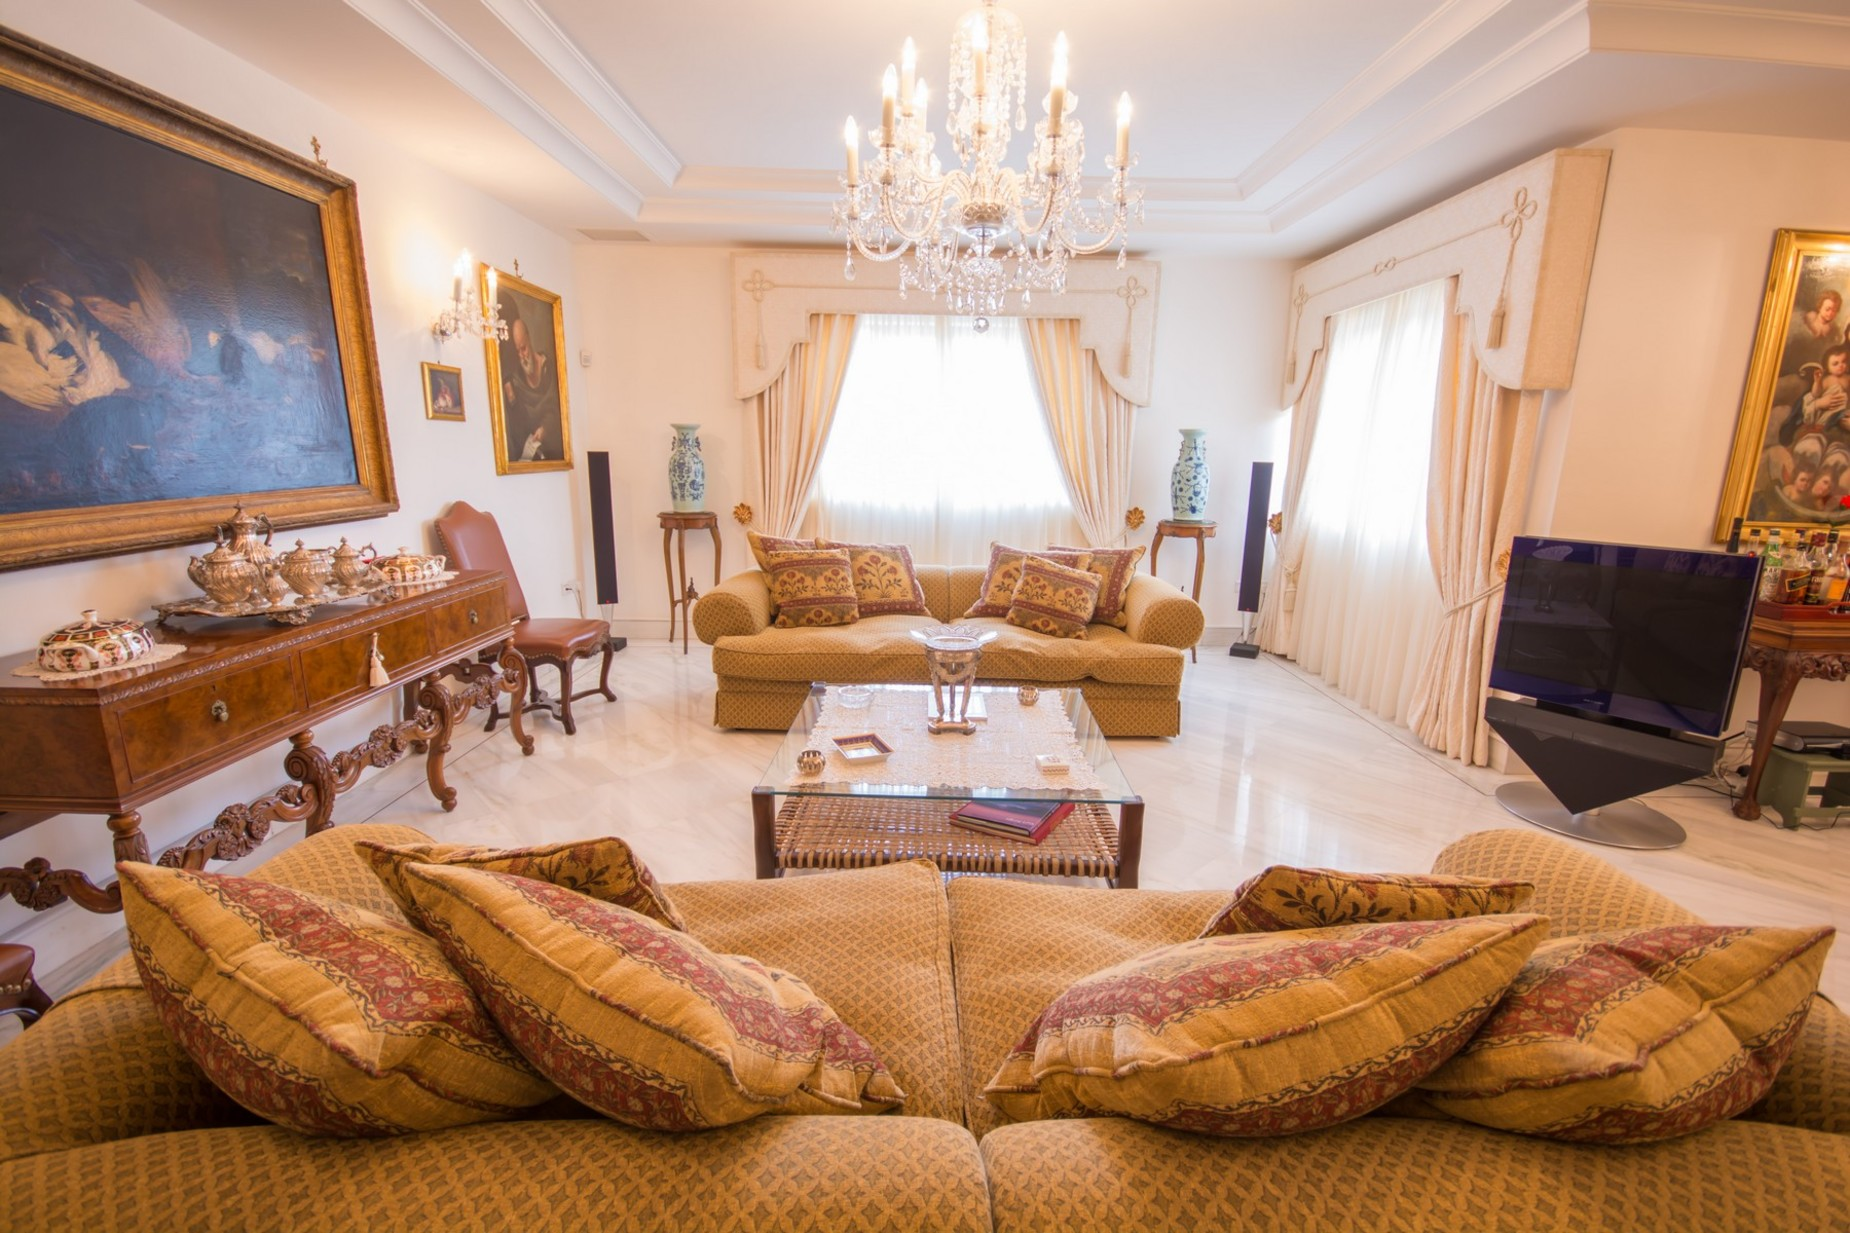 4 bed Villa For Sale in Rabat, Rabat - thumb 7